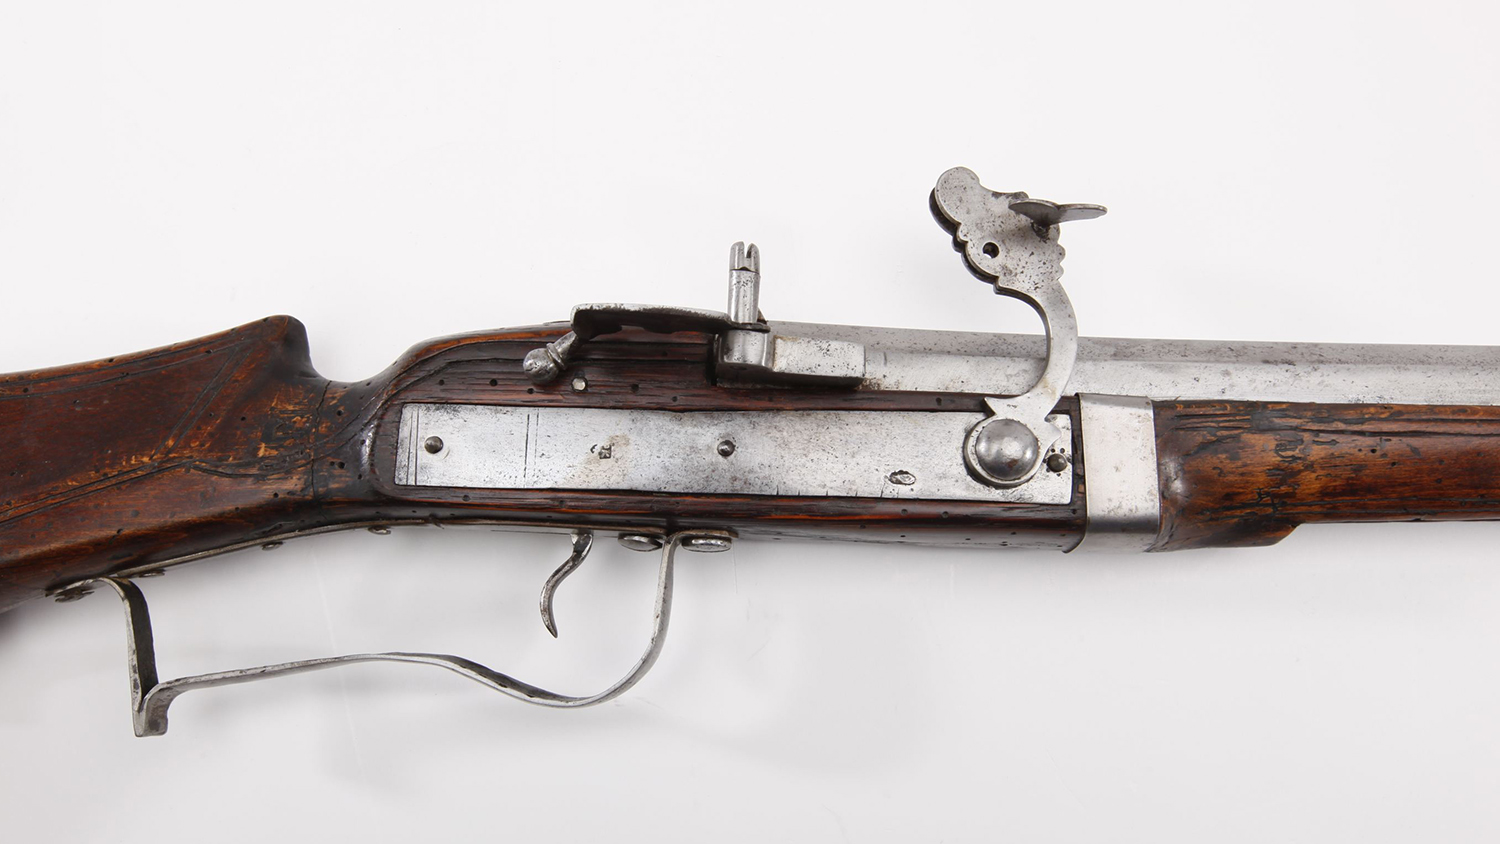 A Brief History of Firearms: Earliest Firearms & Early Ignition Systems